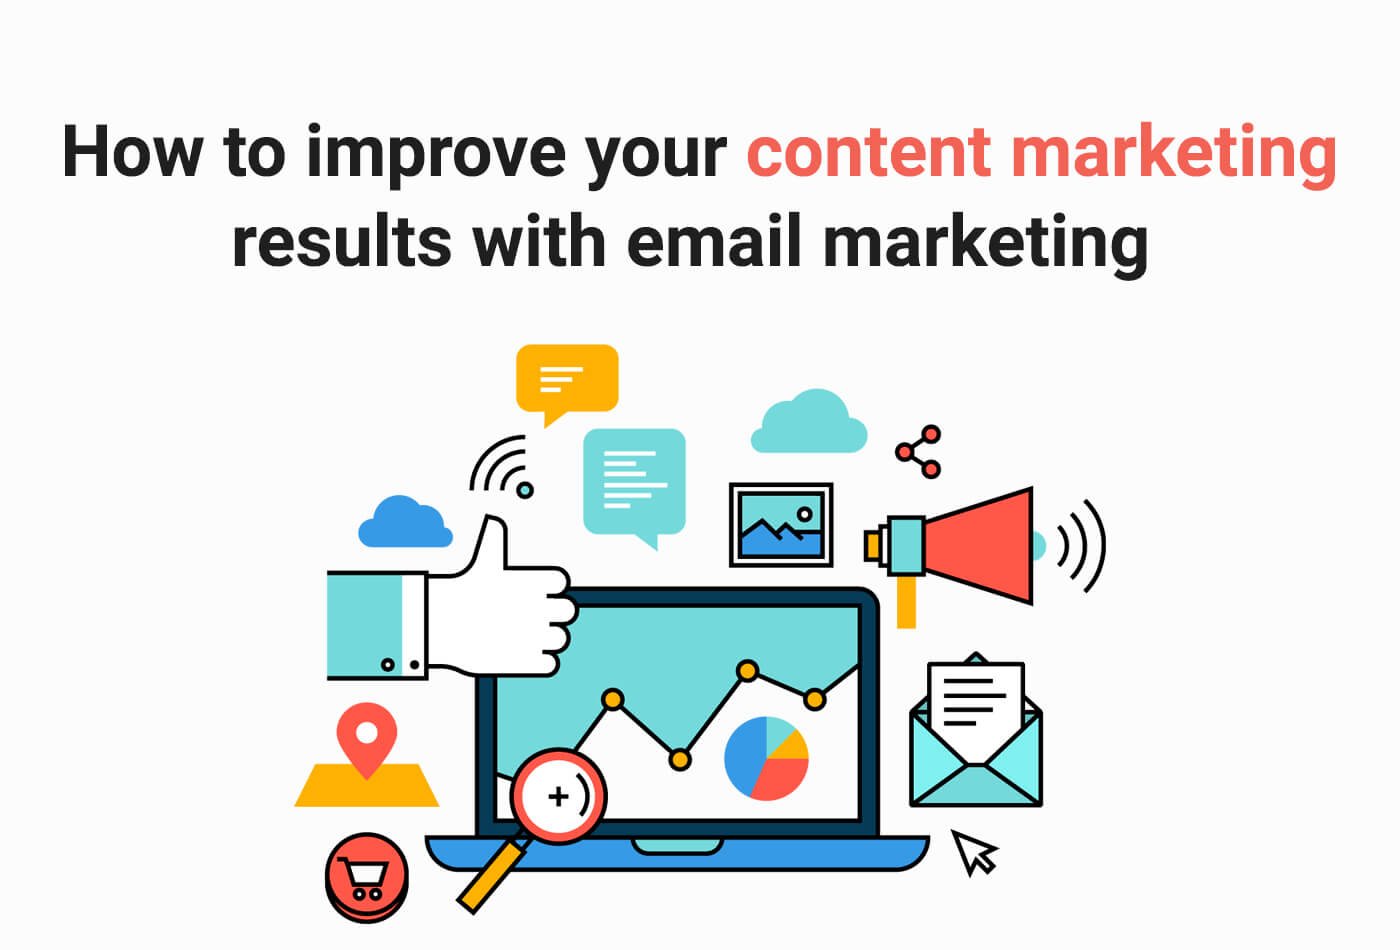 How to improve your content marketing using email marketing